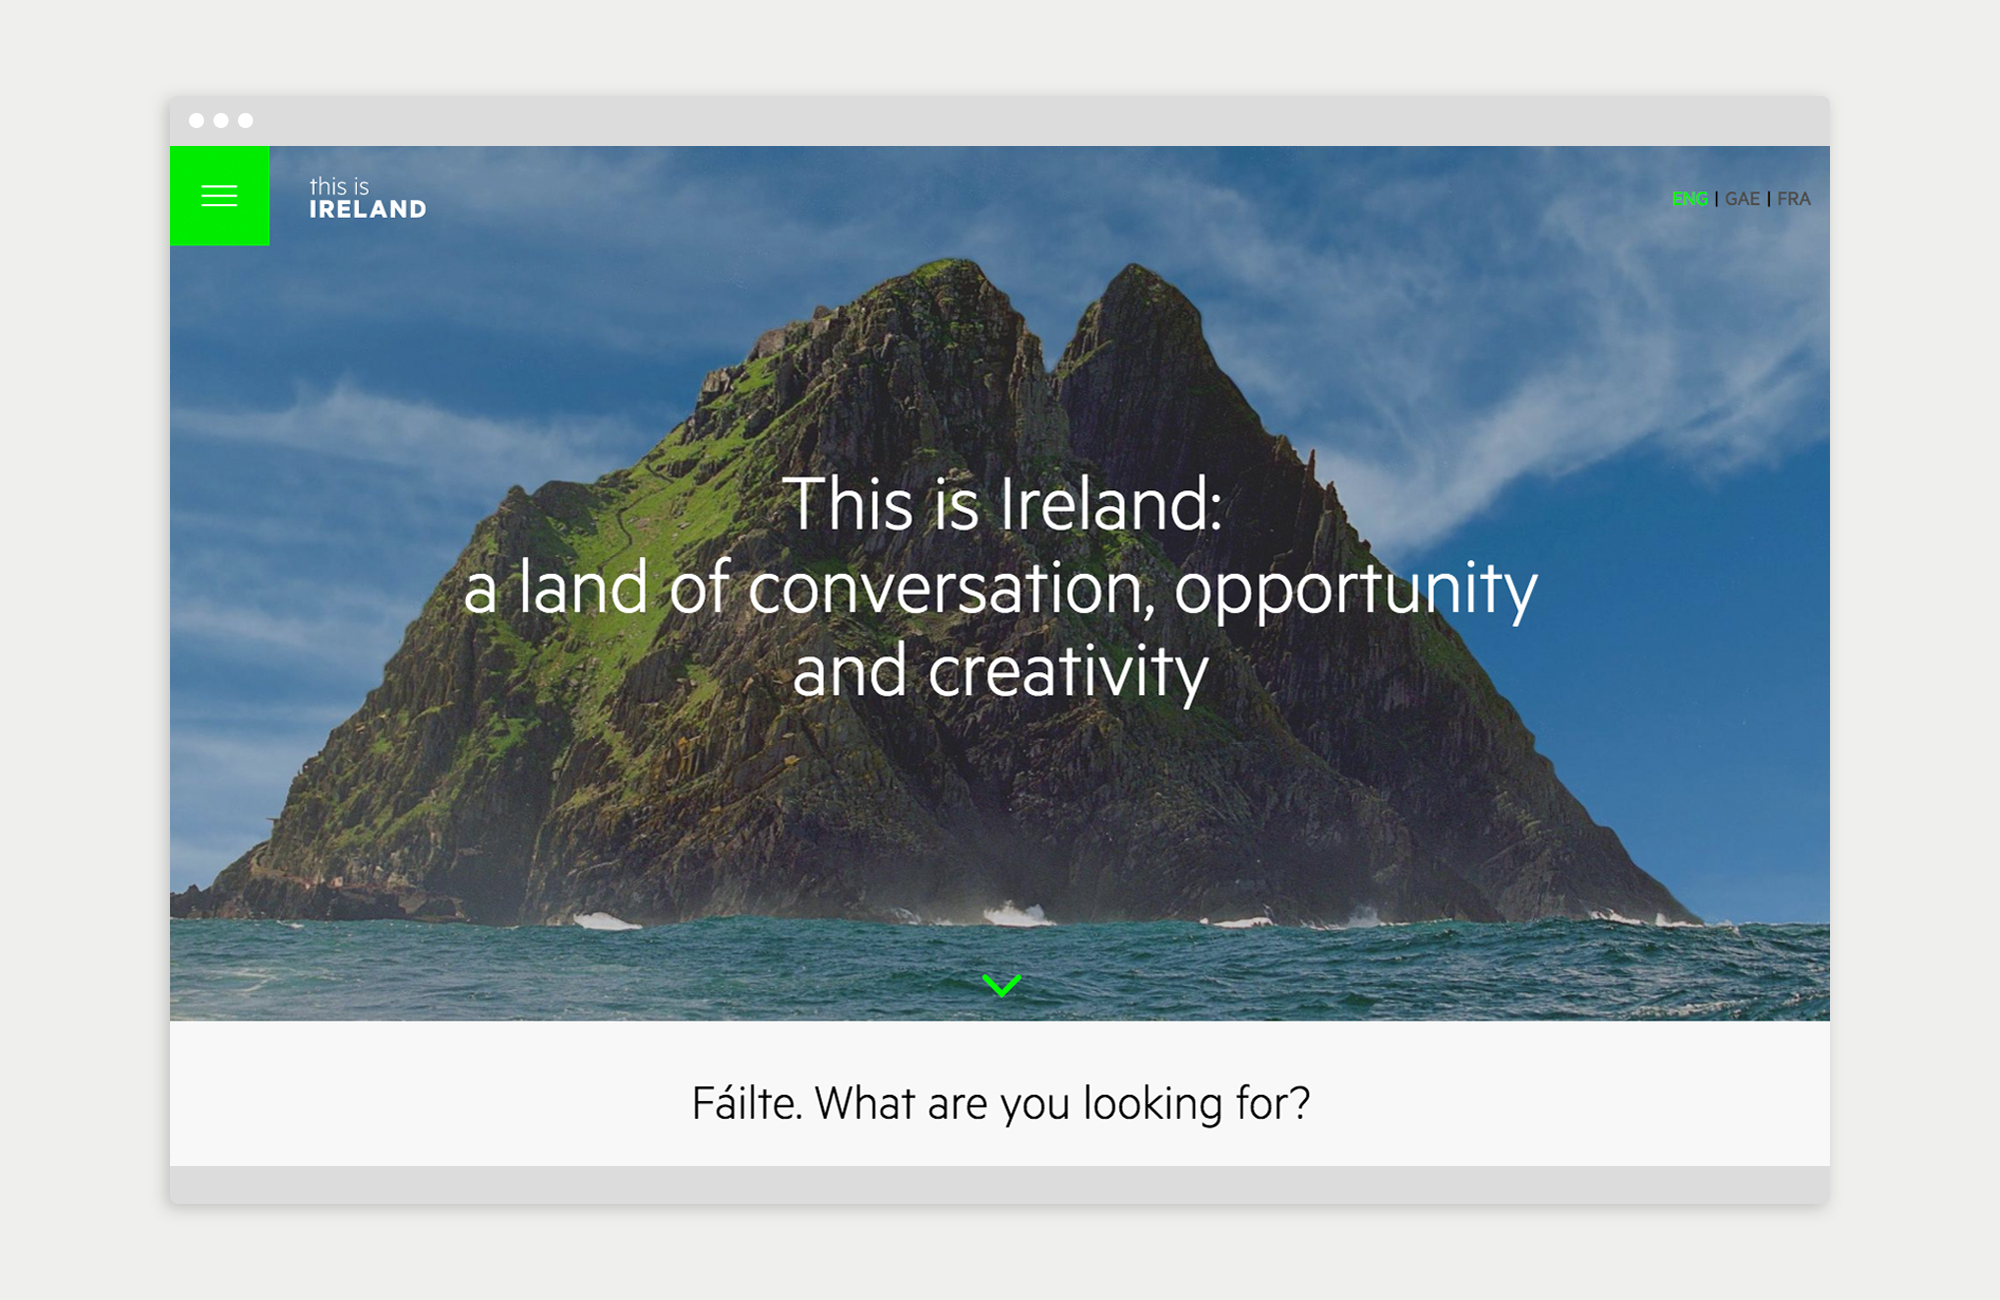 Cover image: This is Ireland (ireland.ie)